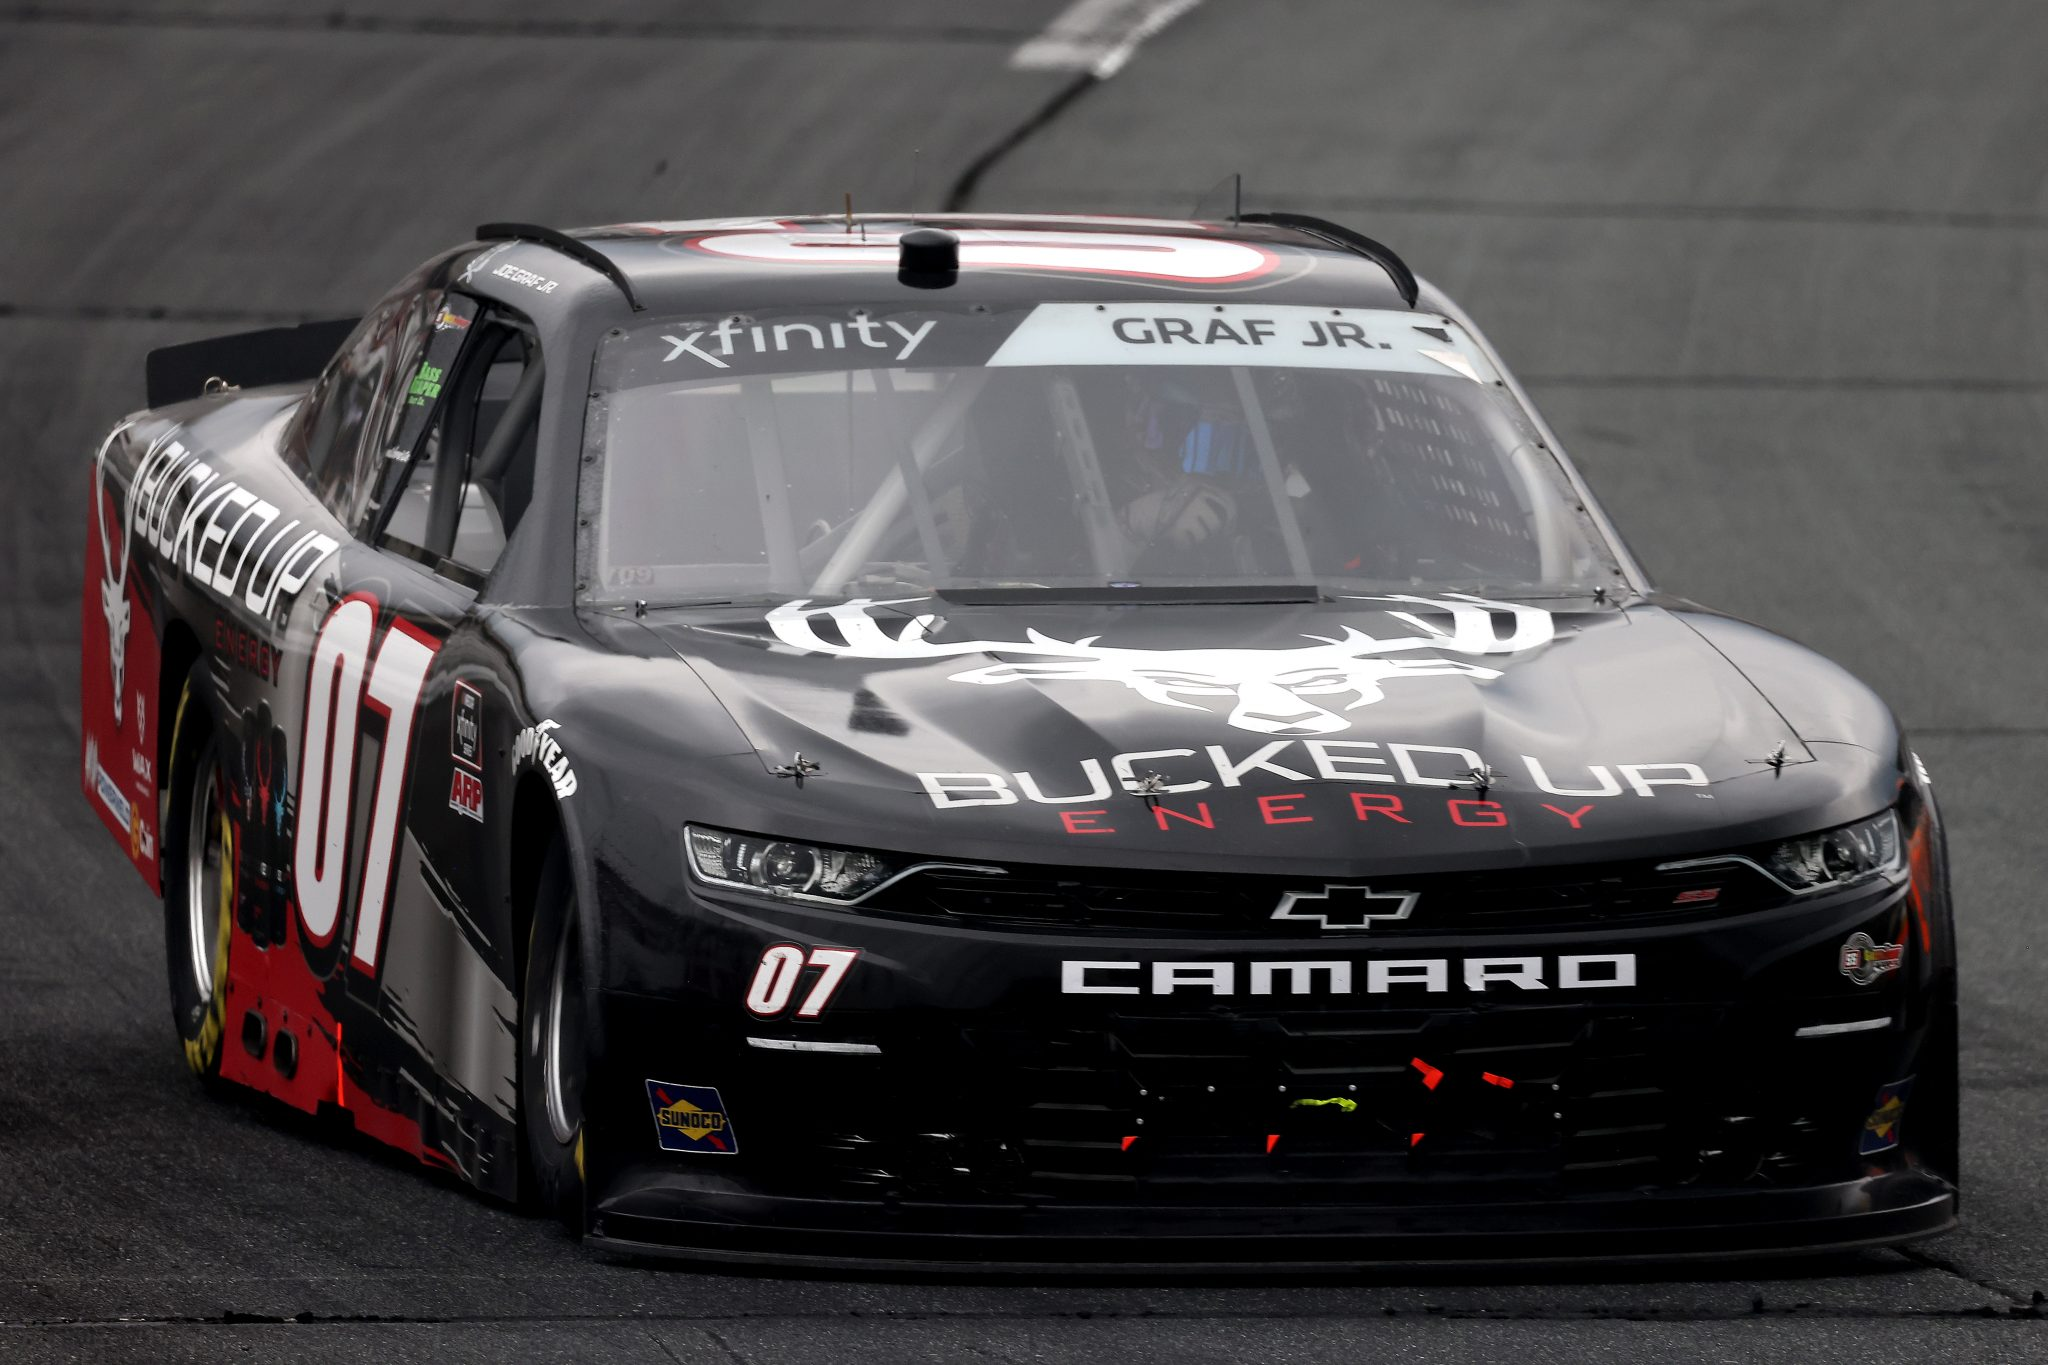 LOUDON, NEW HAMPSHIRE - JULY 17: Joe Graf Jr, driver of the #07 Bucked Up Energy Chevrolet, drives during the NASCAR Xfinity Series Ambetter Get Vaccinated 200 at New Hampshire Motor Speedway on July 17, 2021 in Loudon, New Hampshire. (Photo by James Gilbert/Getty Images) | Getty Images